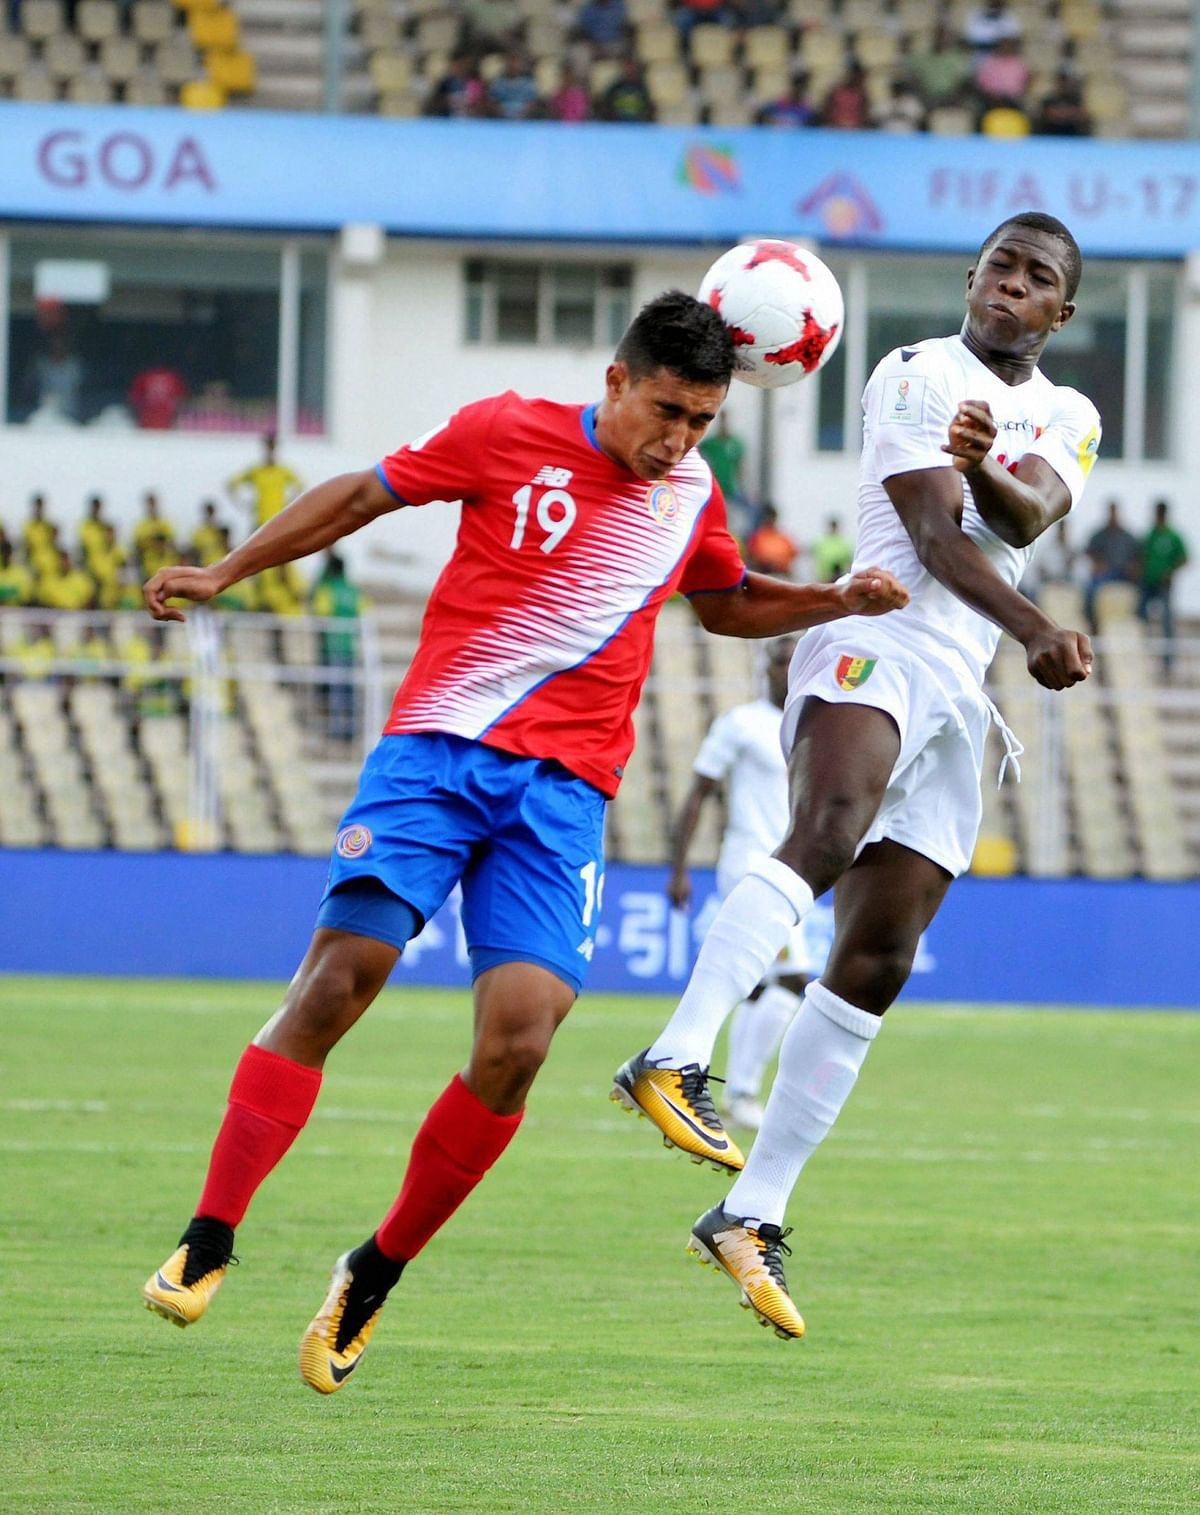 Players of  Costa Rica and Guinea vie for the ball during their U-17 FIFA World Cup football match at Pandit Jawaharlal Nehru Stadium, Goa.